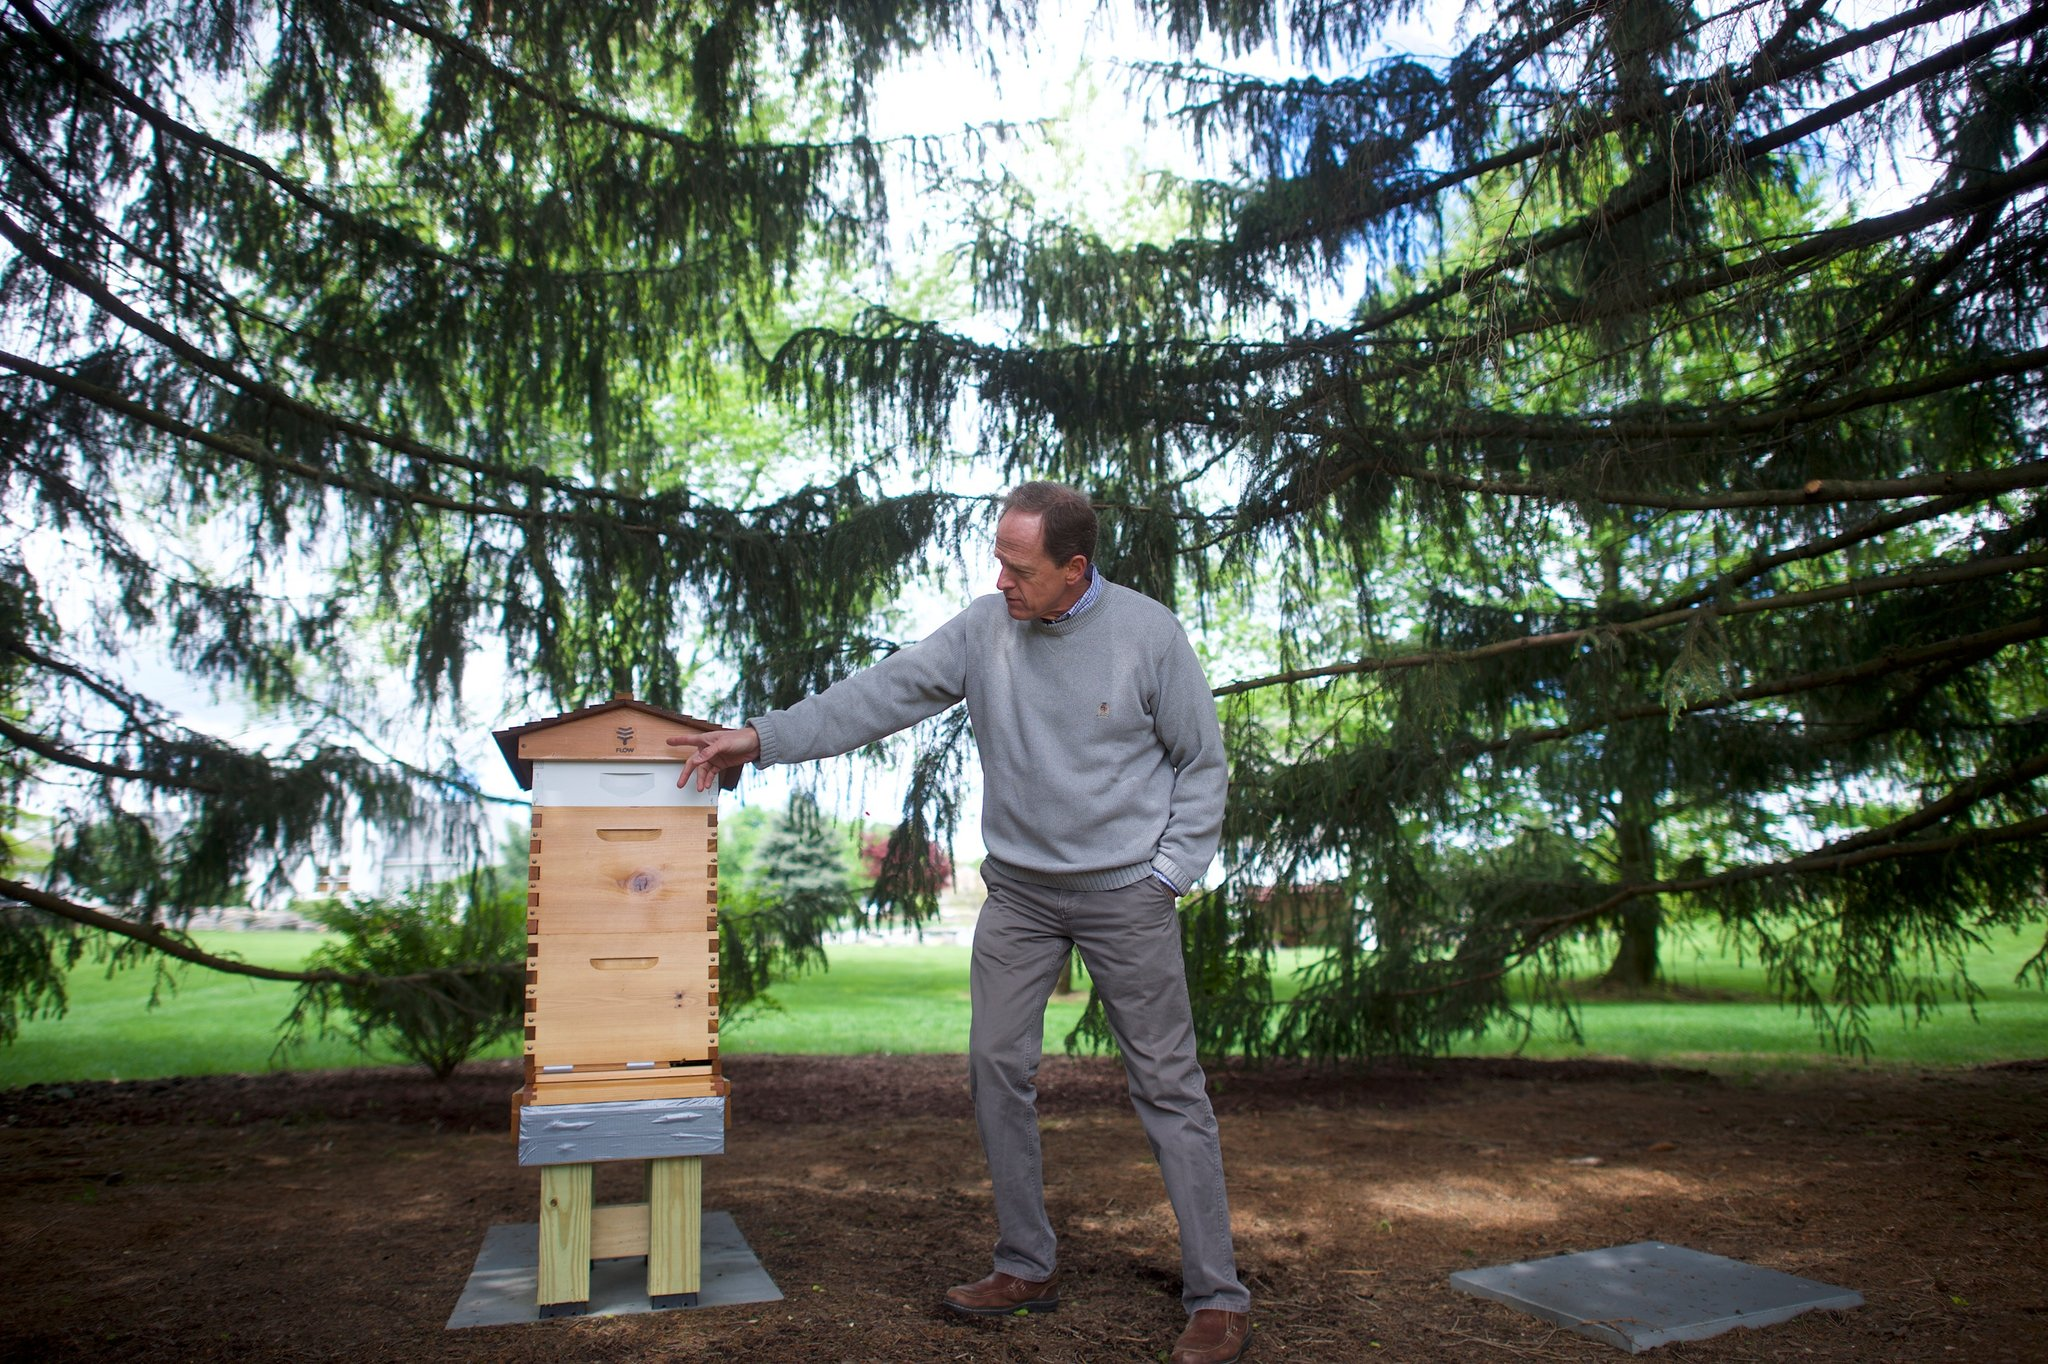 New York Times: Senator Toomey Takes Up Beekeeping to Relax